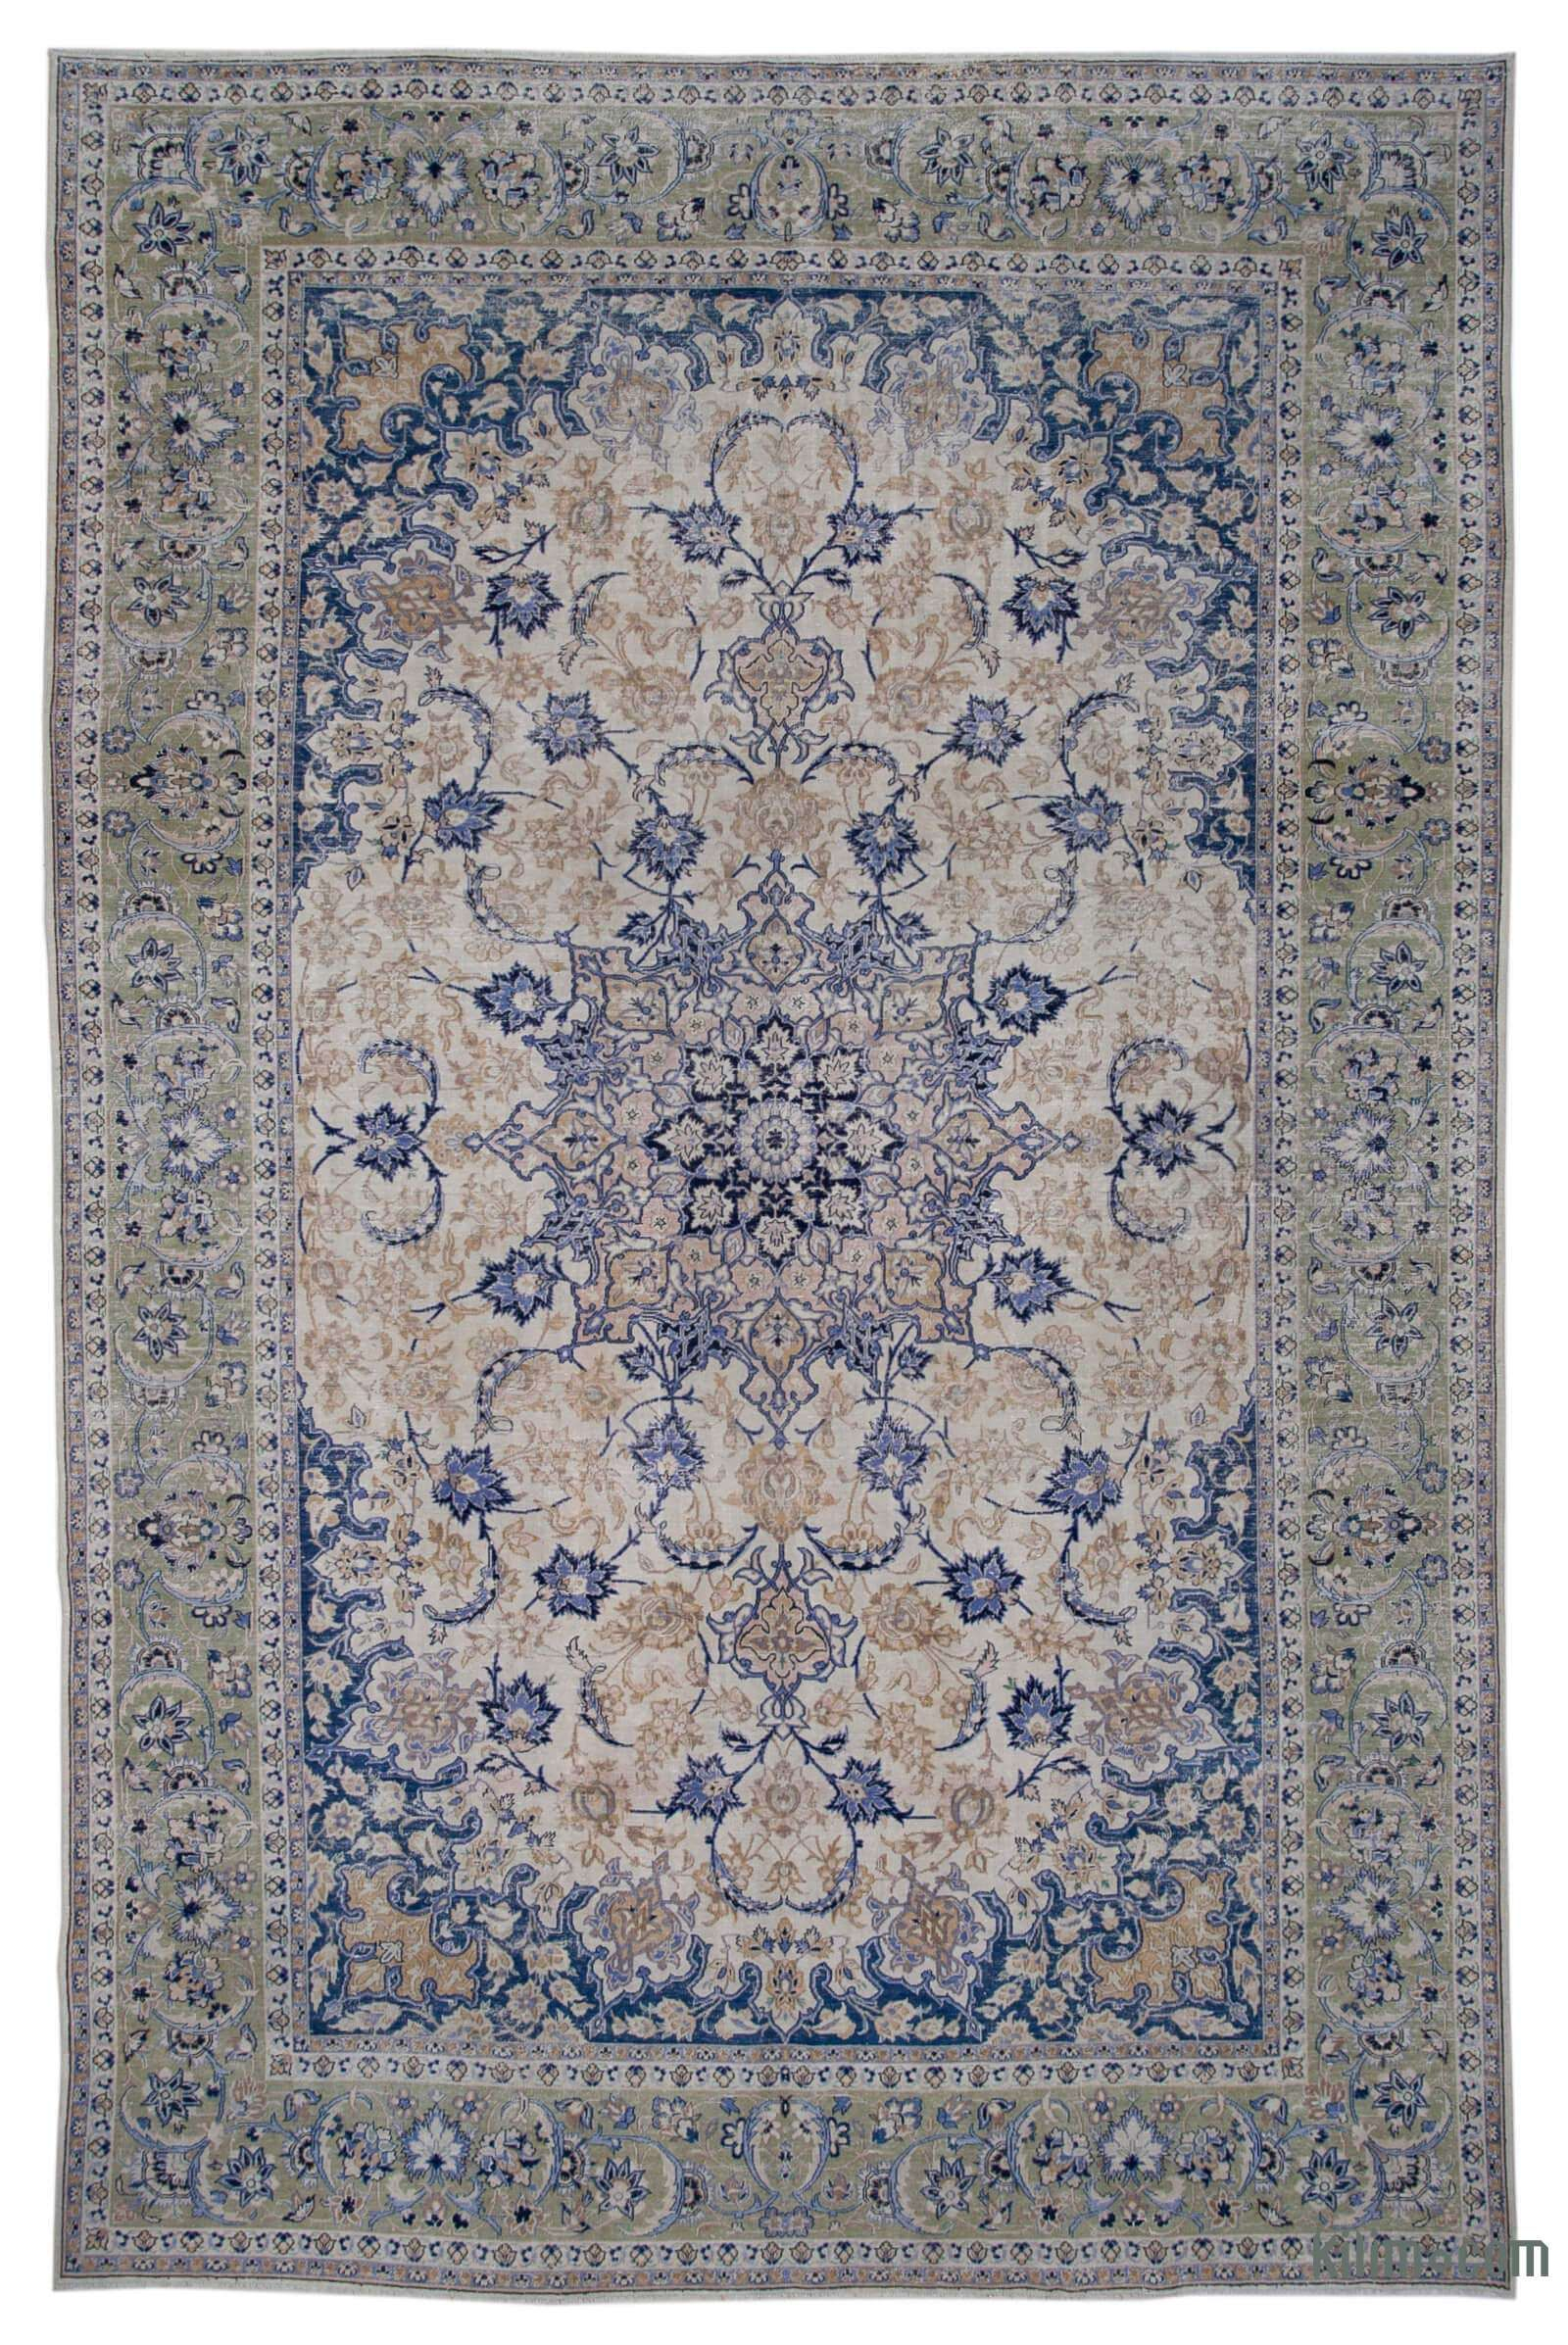 Vintage Hand Knotted Oriental Rug 10 1 X 15 7 121 In X 187